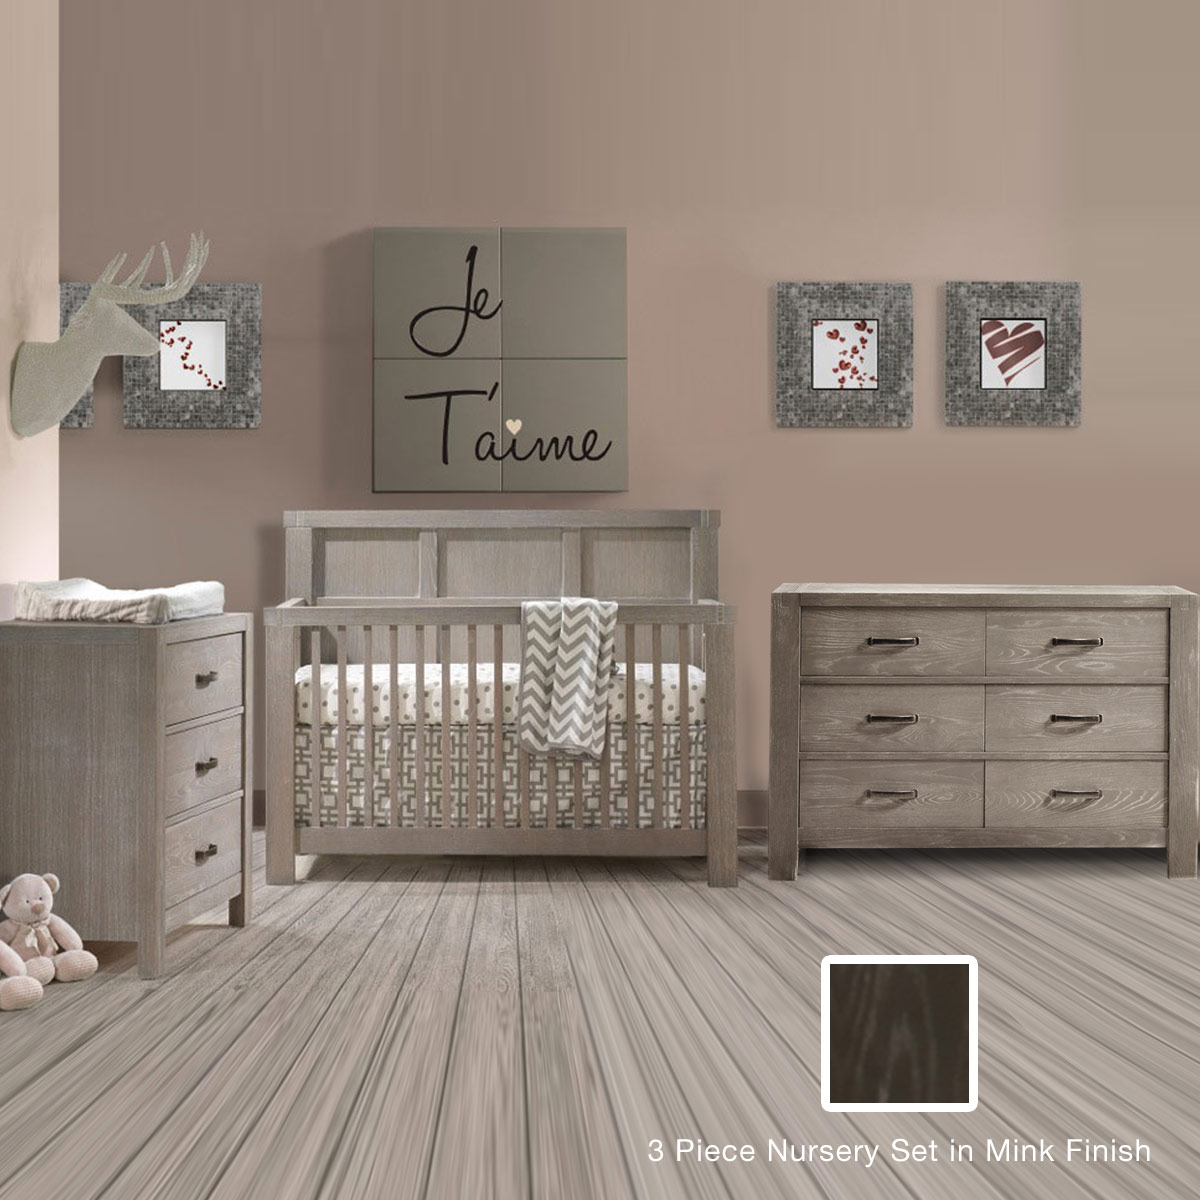 Natart crib for sale - Natart Rustico 3 Piece Nursery Set 4 In 1 Convertible Crib 3 Drawer Dresser And Double Dresser In Owl Free Shipping